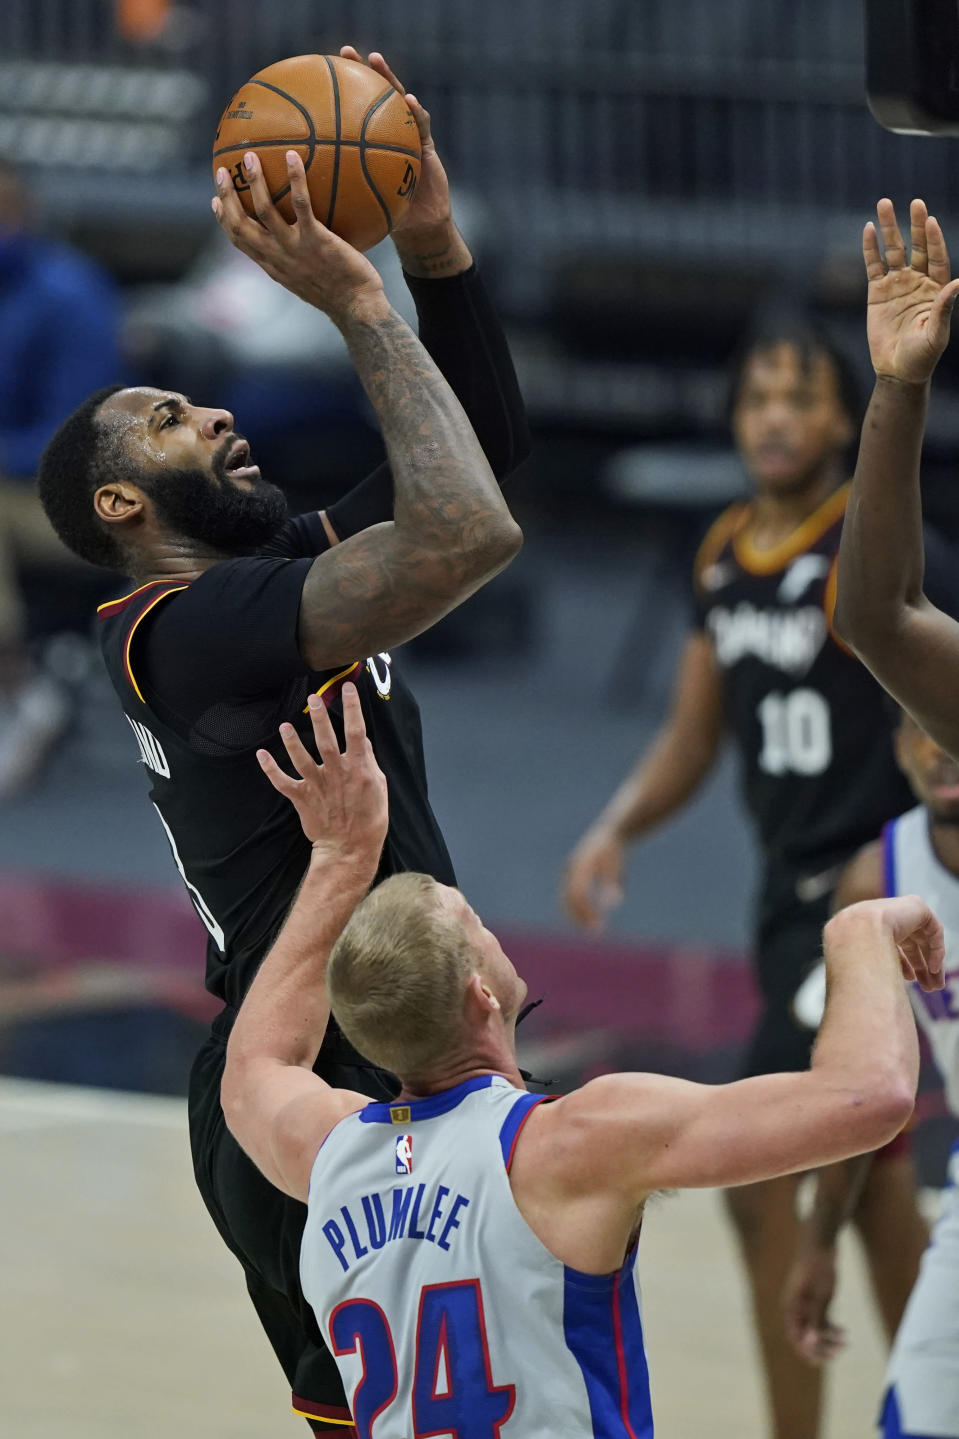 Cleveland Cavaliers' Andre Drummond, left, shoots over Detroit Pistons' Mason Plumlee in the first half of an NBA basketball game, Wednesday, Jan. 27, 2021, in Cleveland. (AP Photo/Tony Dejak)